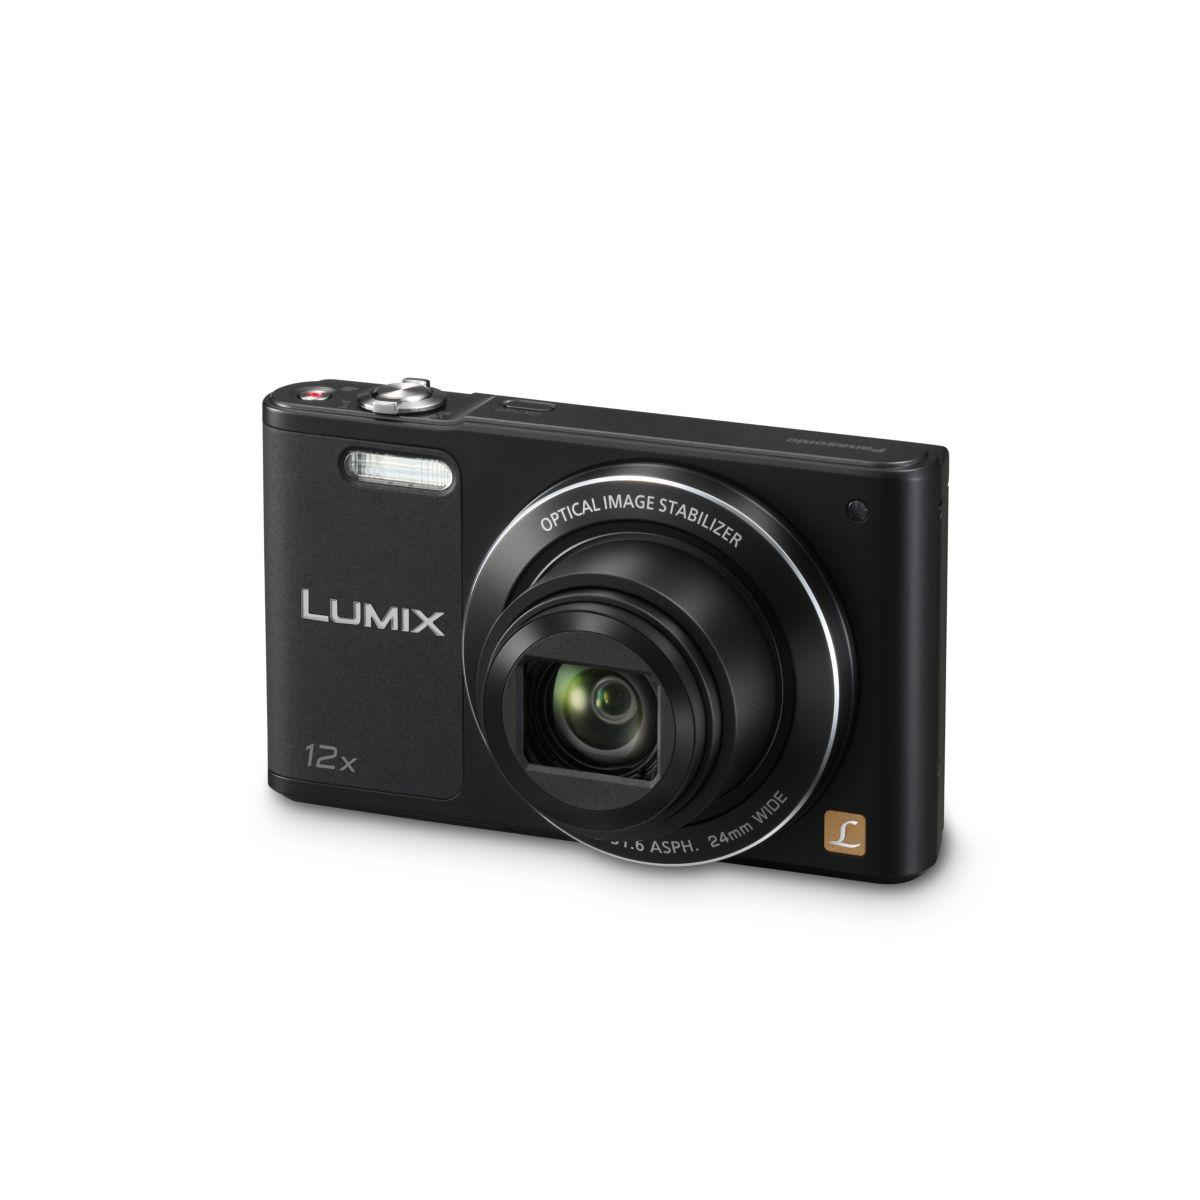 Appareil photo compact panasonic dmc-sz10 noir